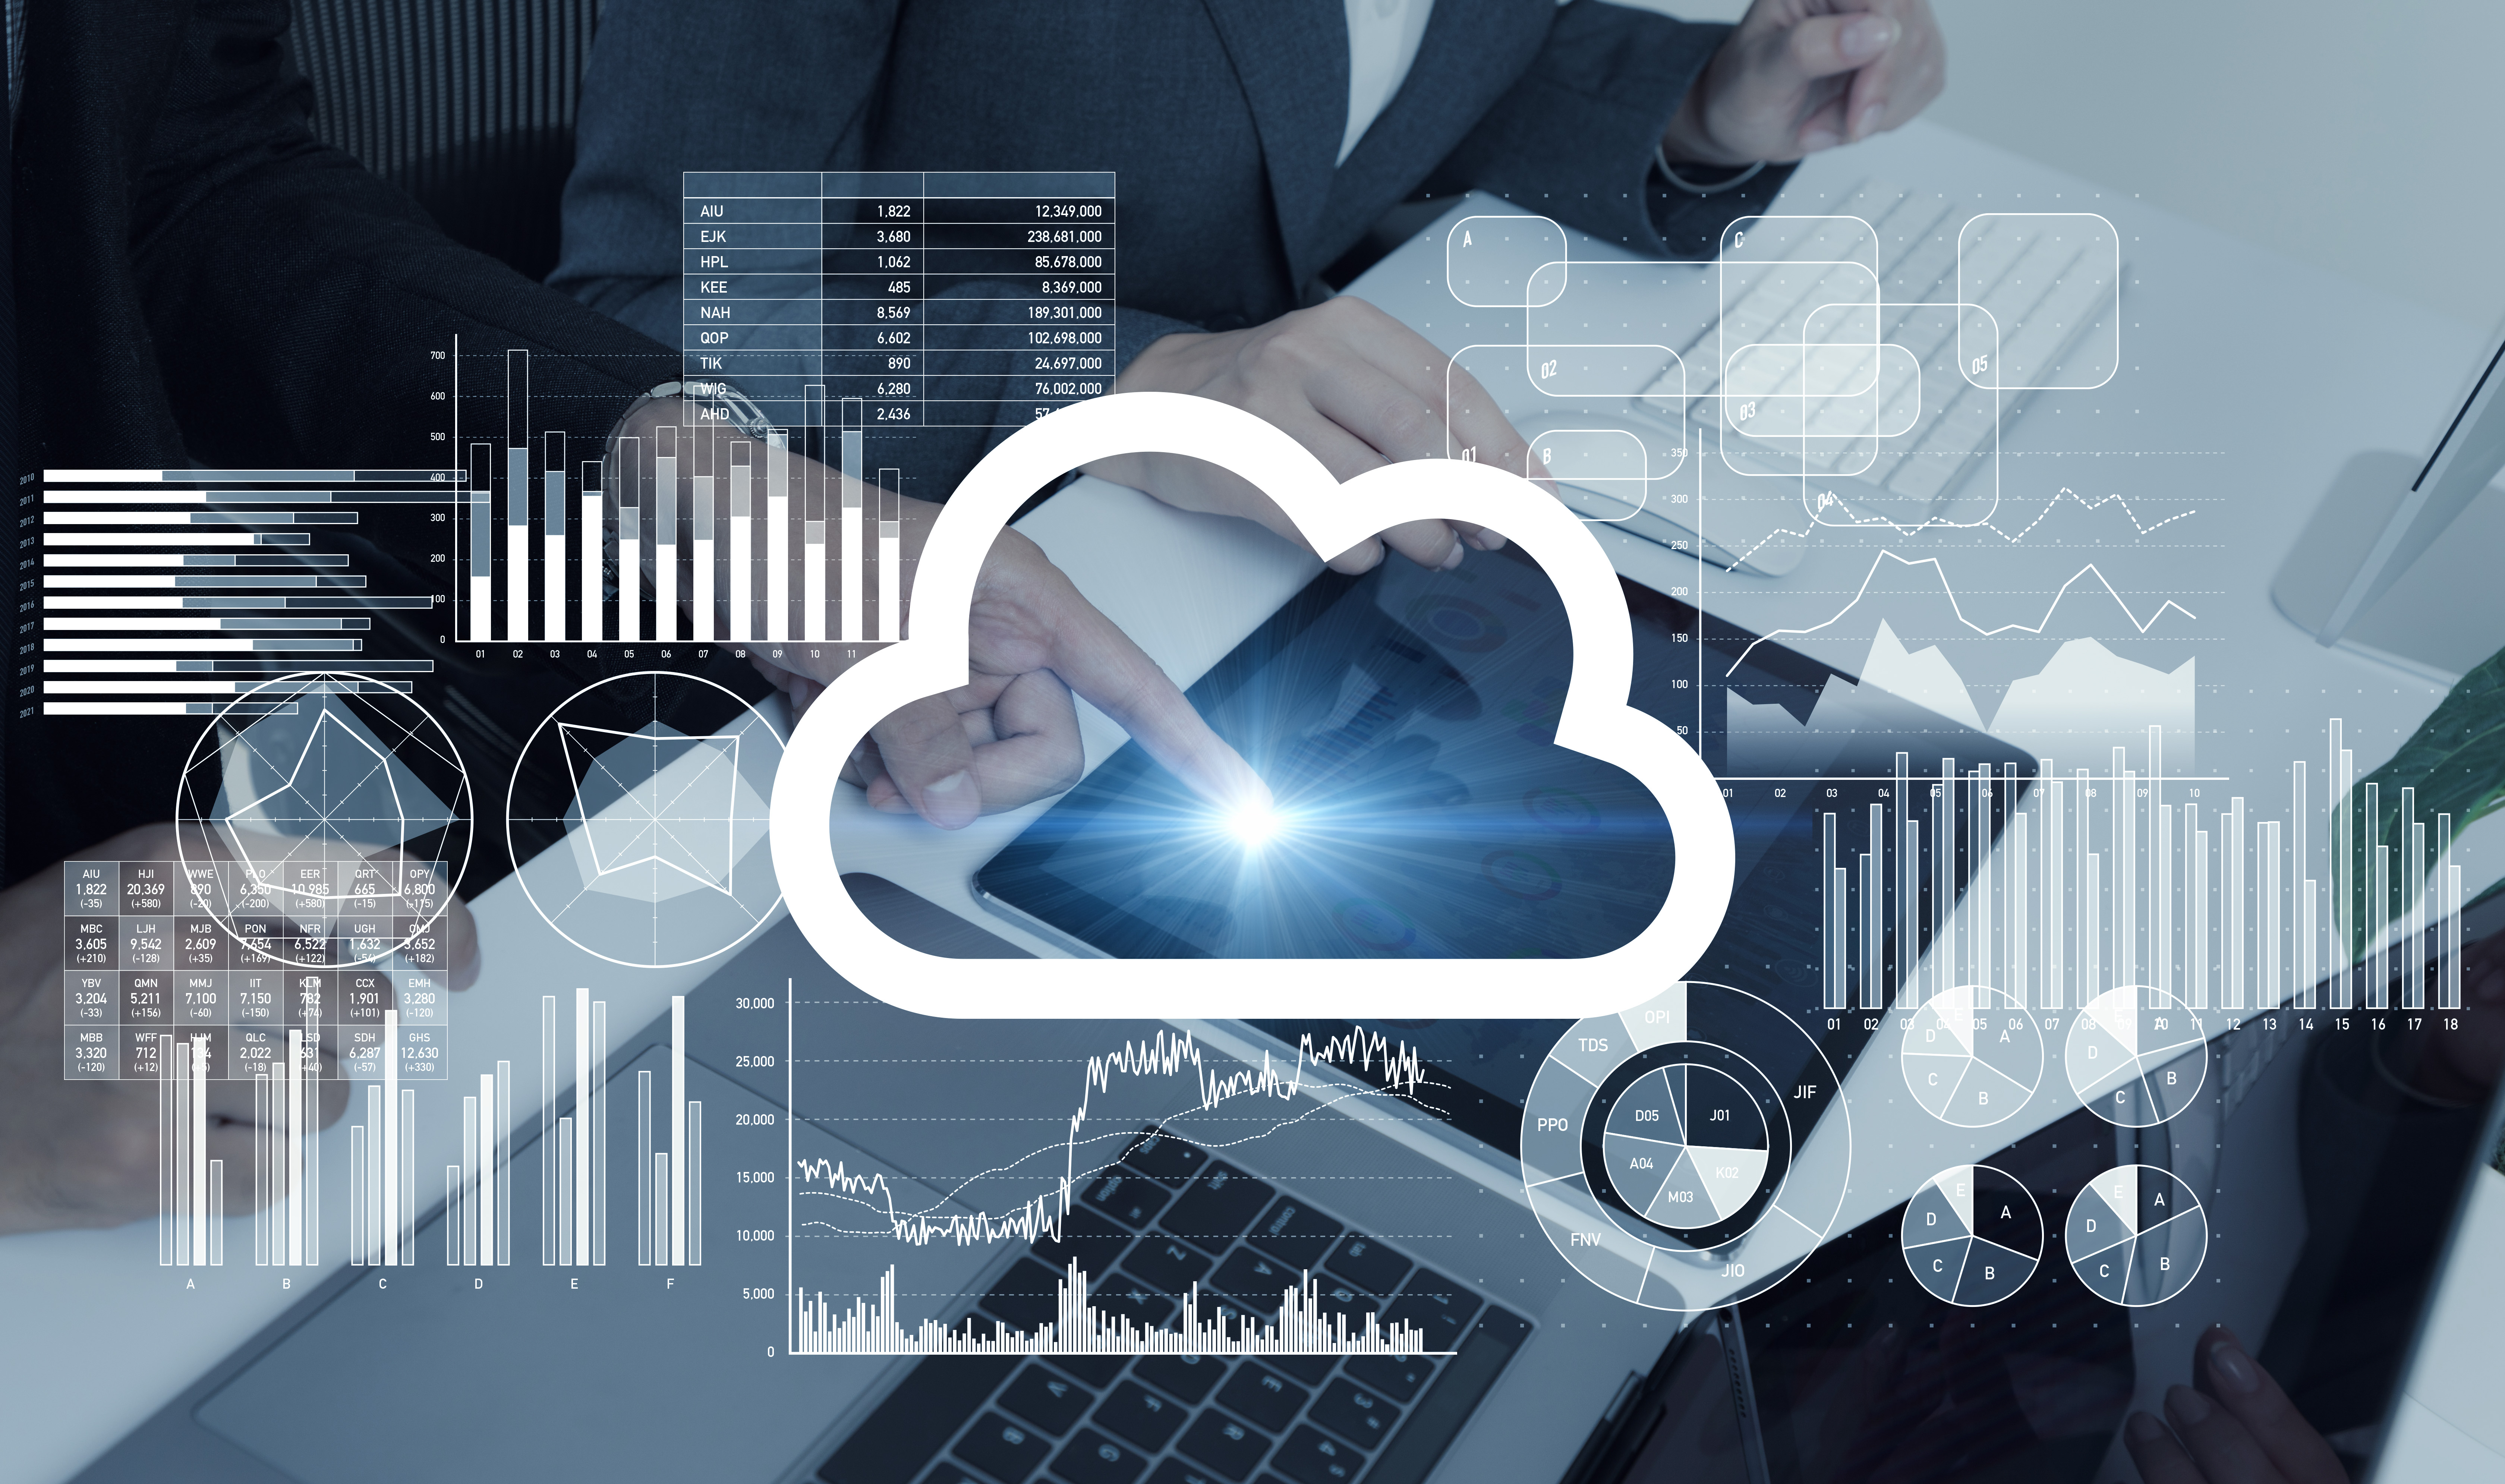 Cloud Computing Image_GettyImages-947075714